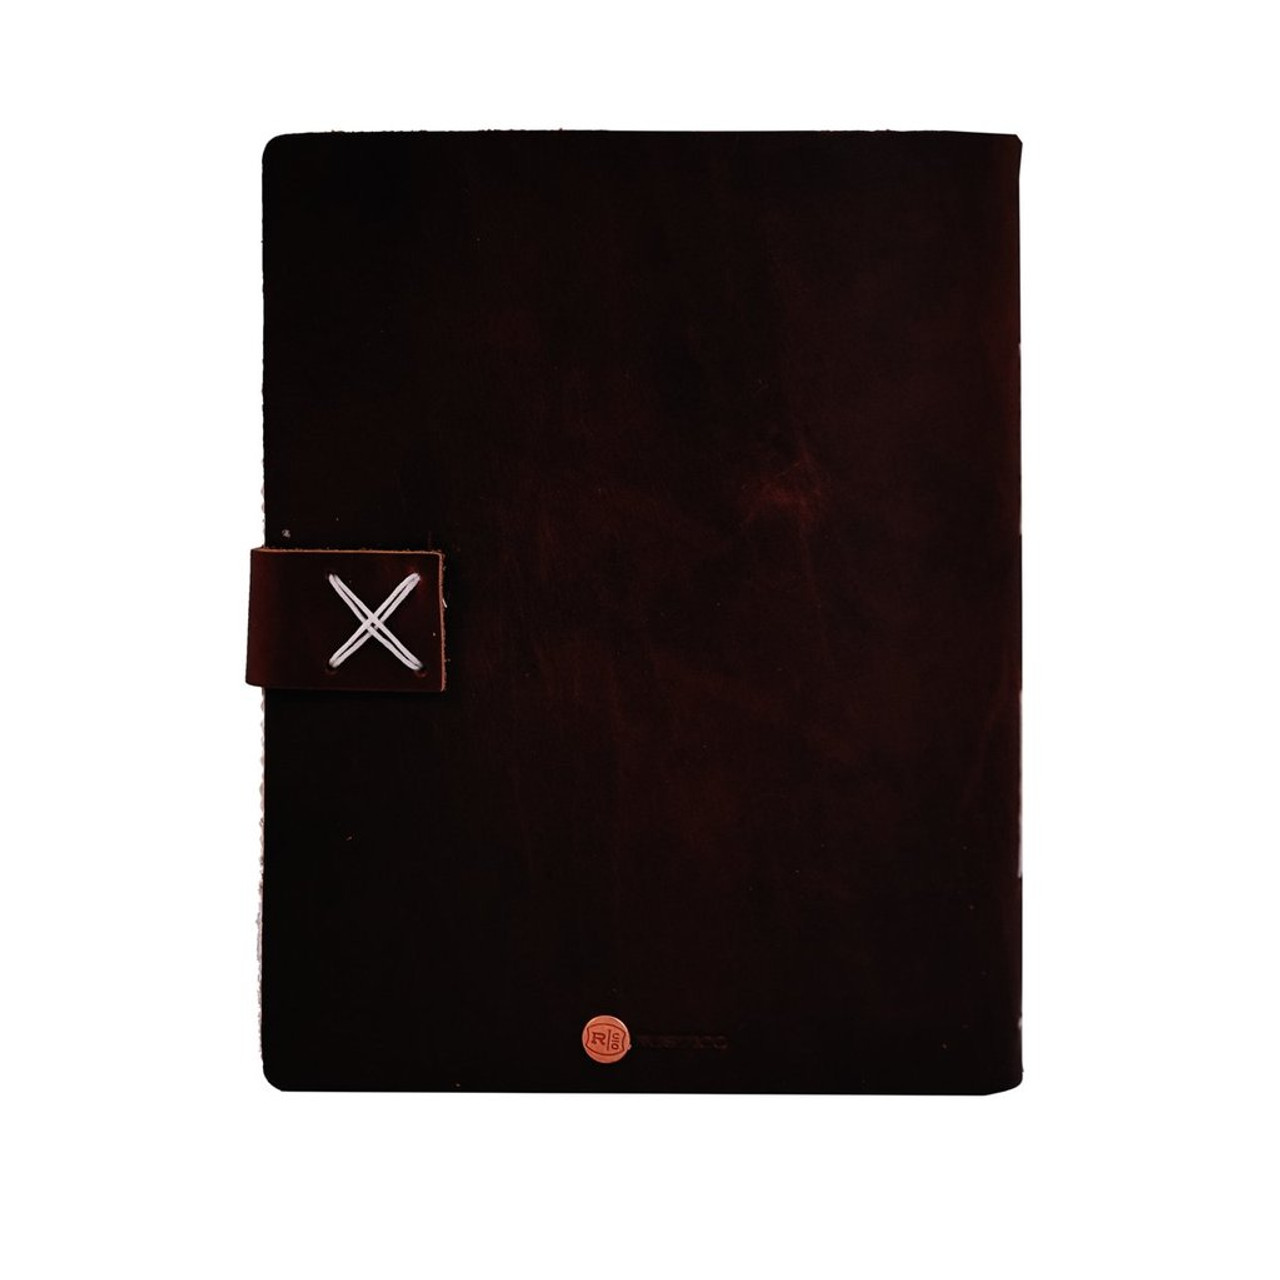 Rustico travelers journal with buckle - back cover